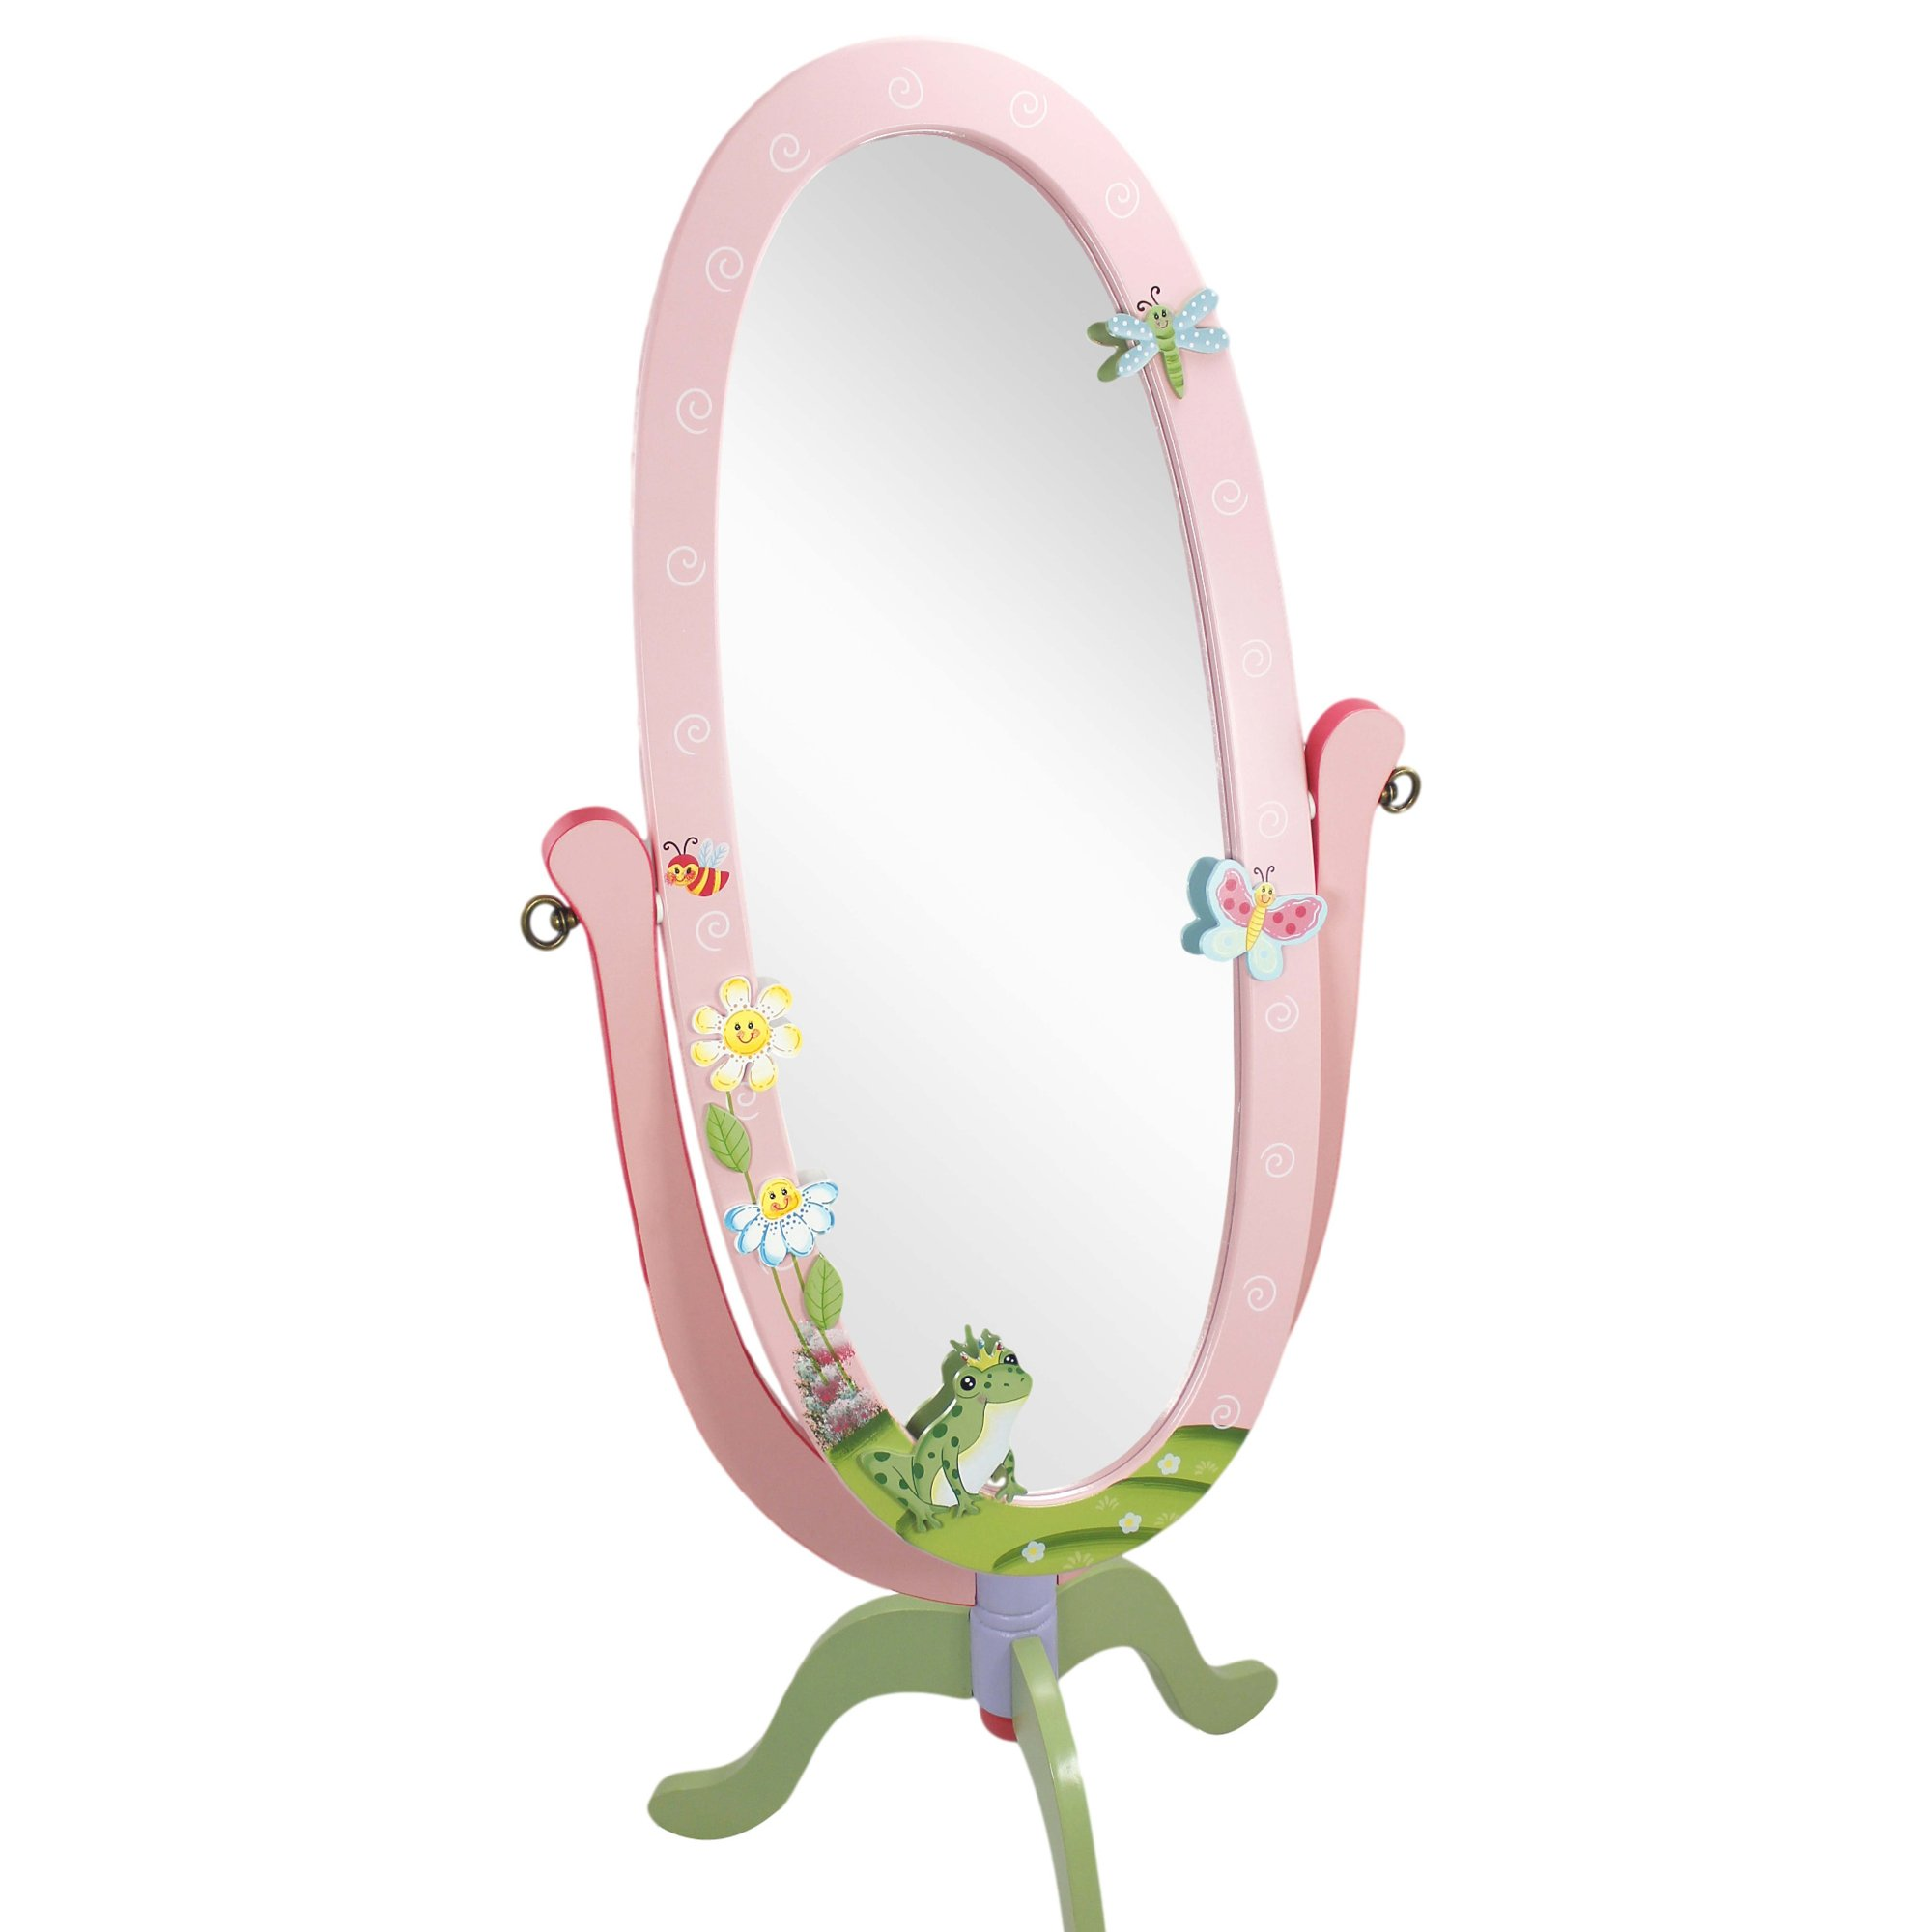 Fantasy Fields - Magic Garden Thematic Kids Wooden Standing Mirror for Girls | Imagination Inspiring Hand Crafted & Hand Painted Details   Non-Toxic, Lead Free Water-based Paint